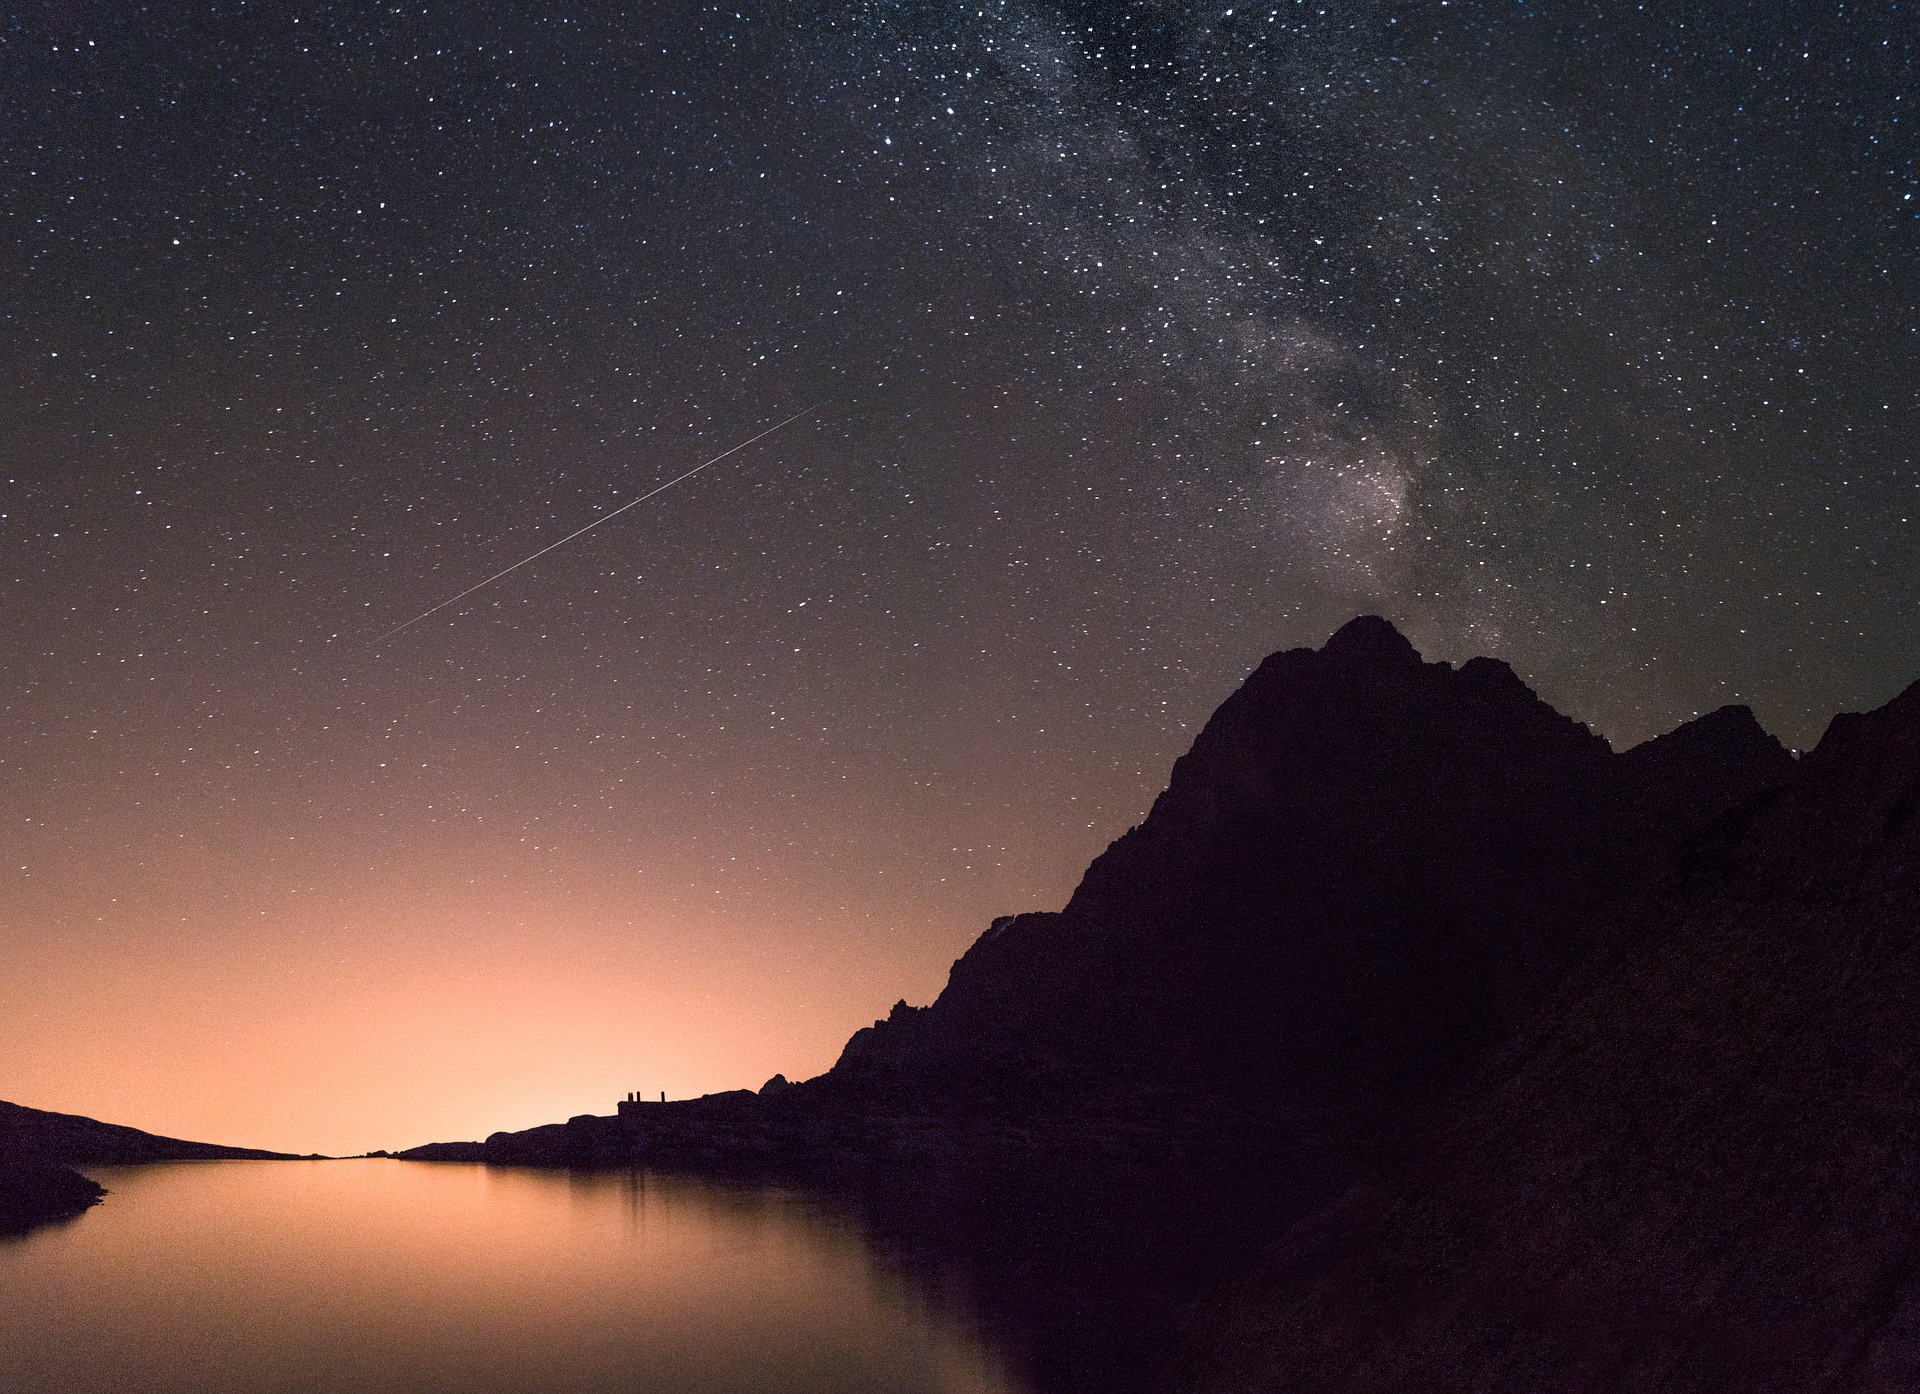 Orionid Meteor Shower, at its peak, will light up the skies this weekend